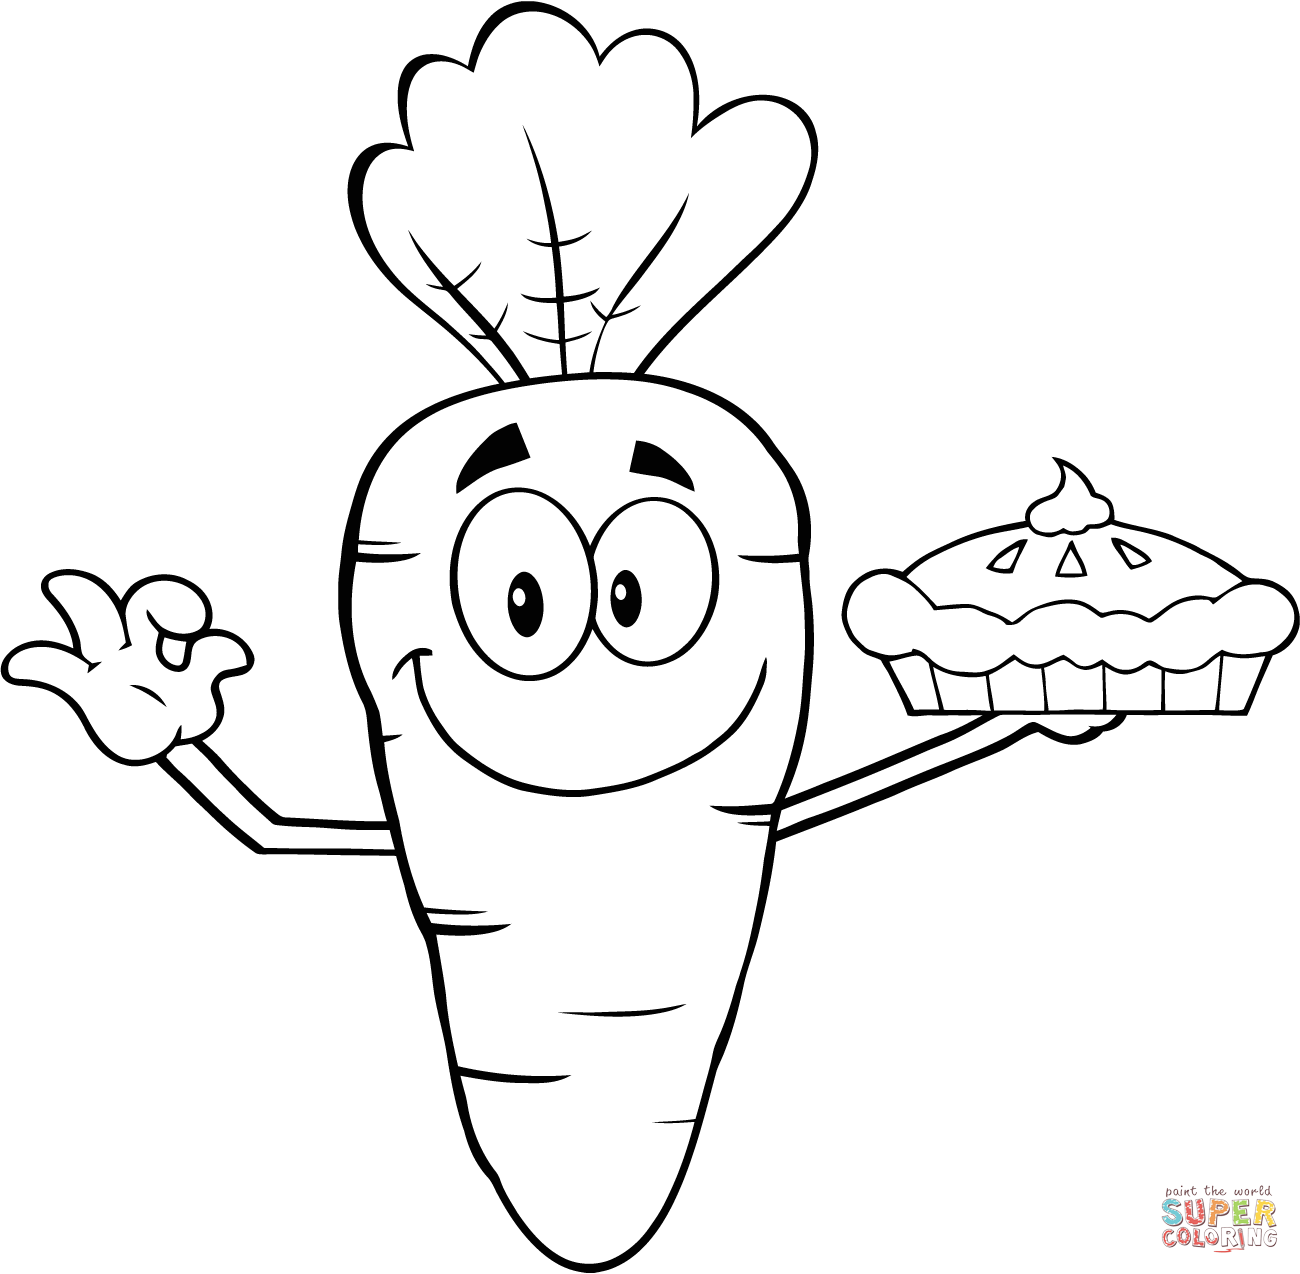 Smiling Cartoon Carrot Holding Up A Pie Coloring Page